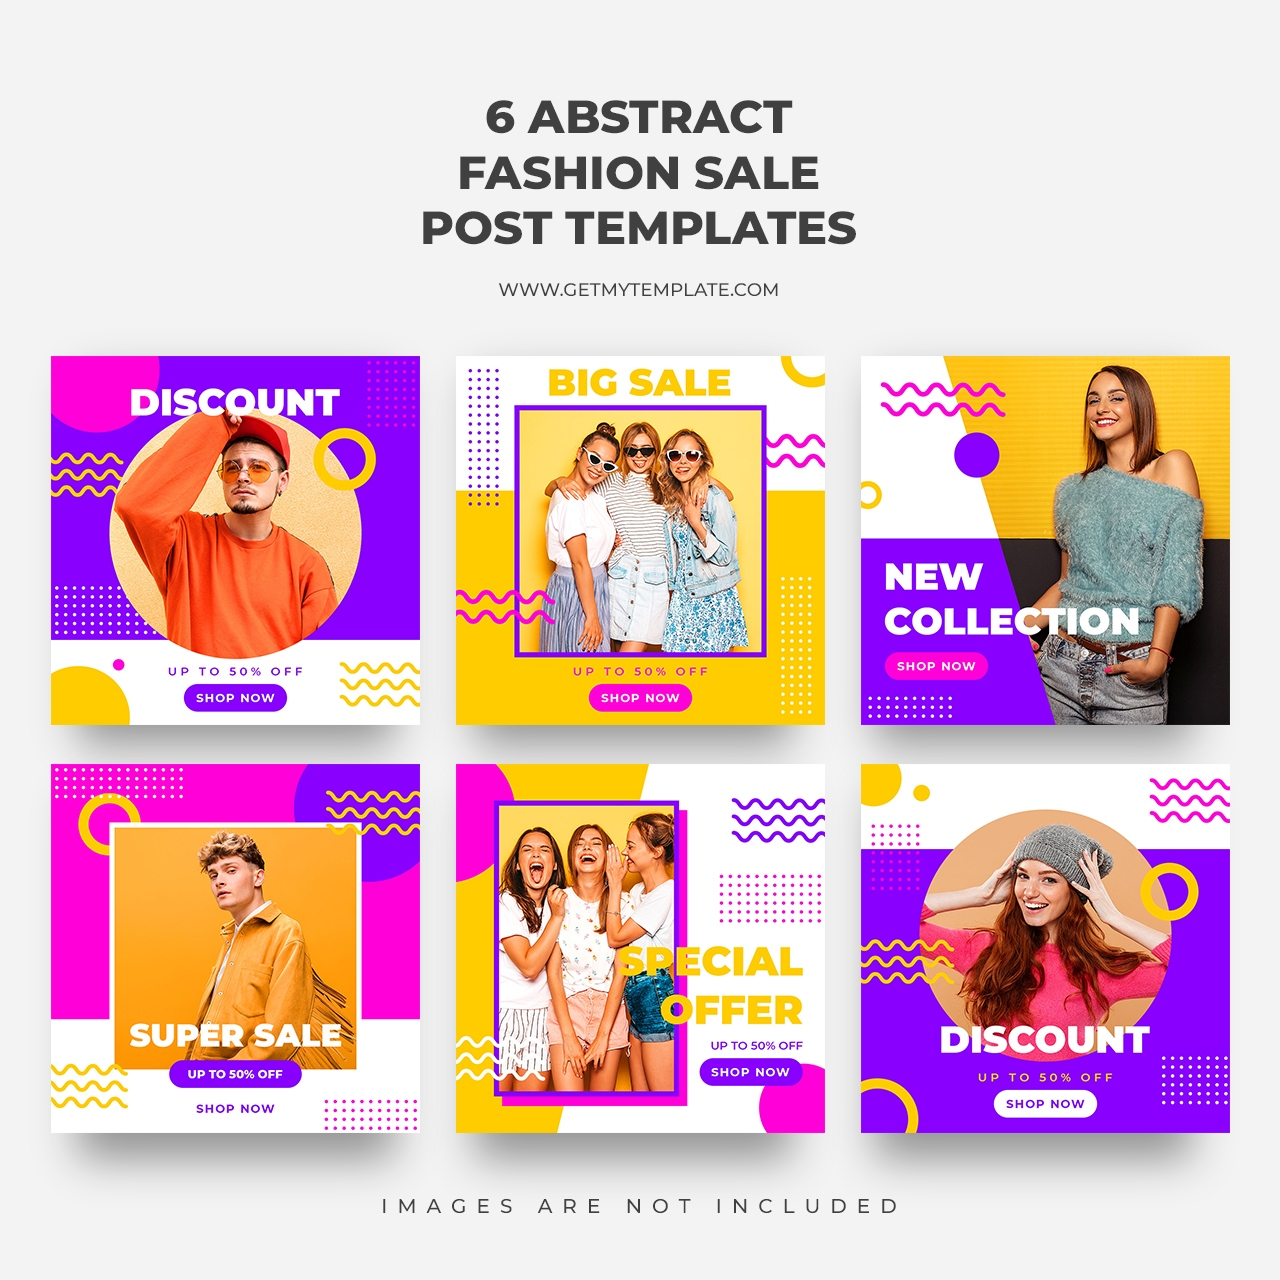 6 free fashion sale post templates